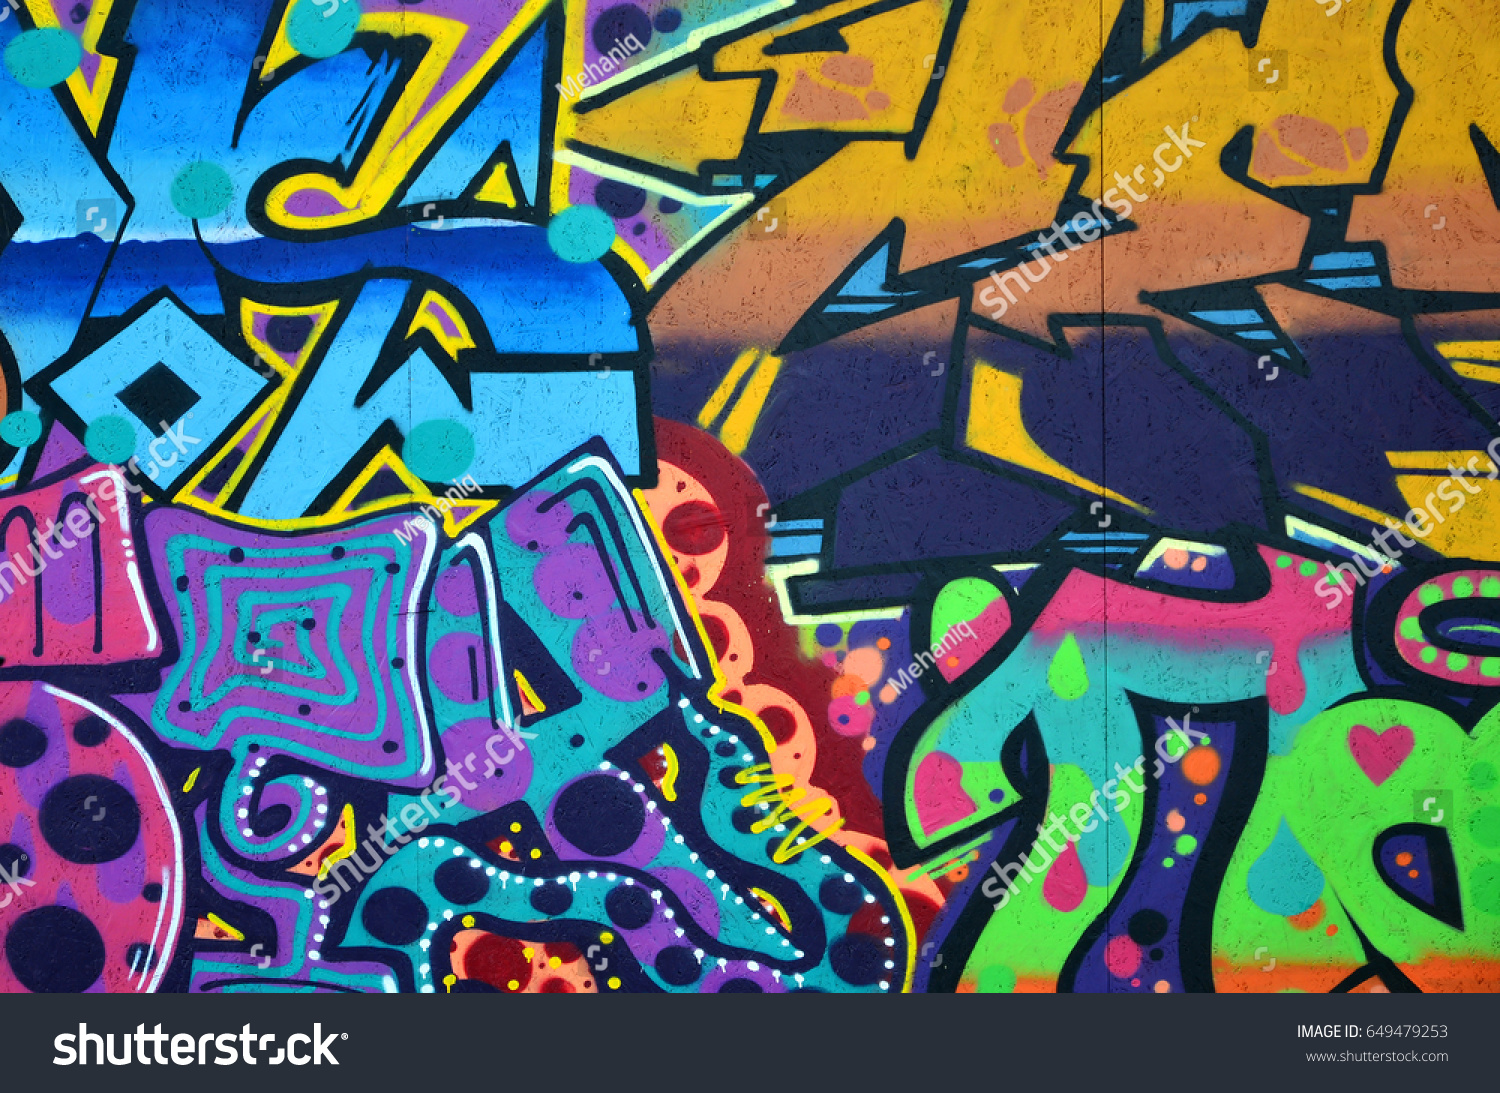 opinion essay about graffiti